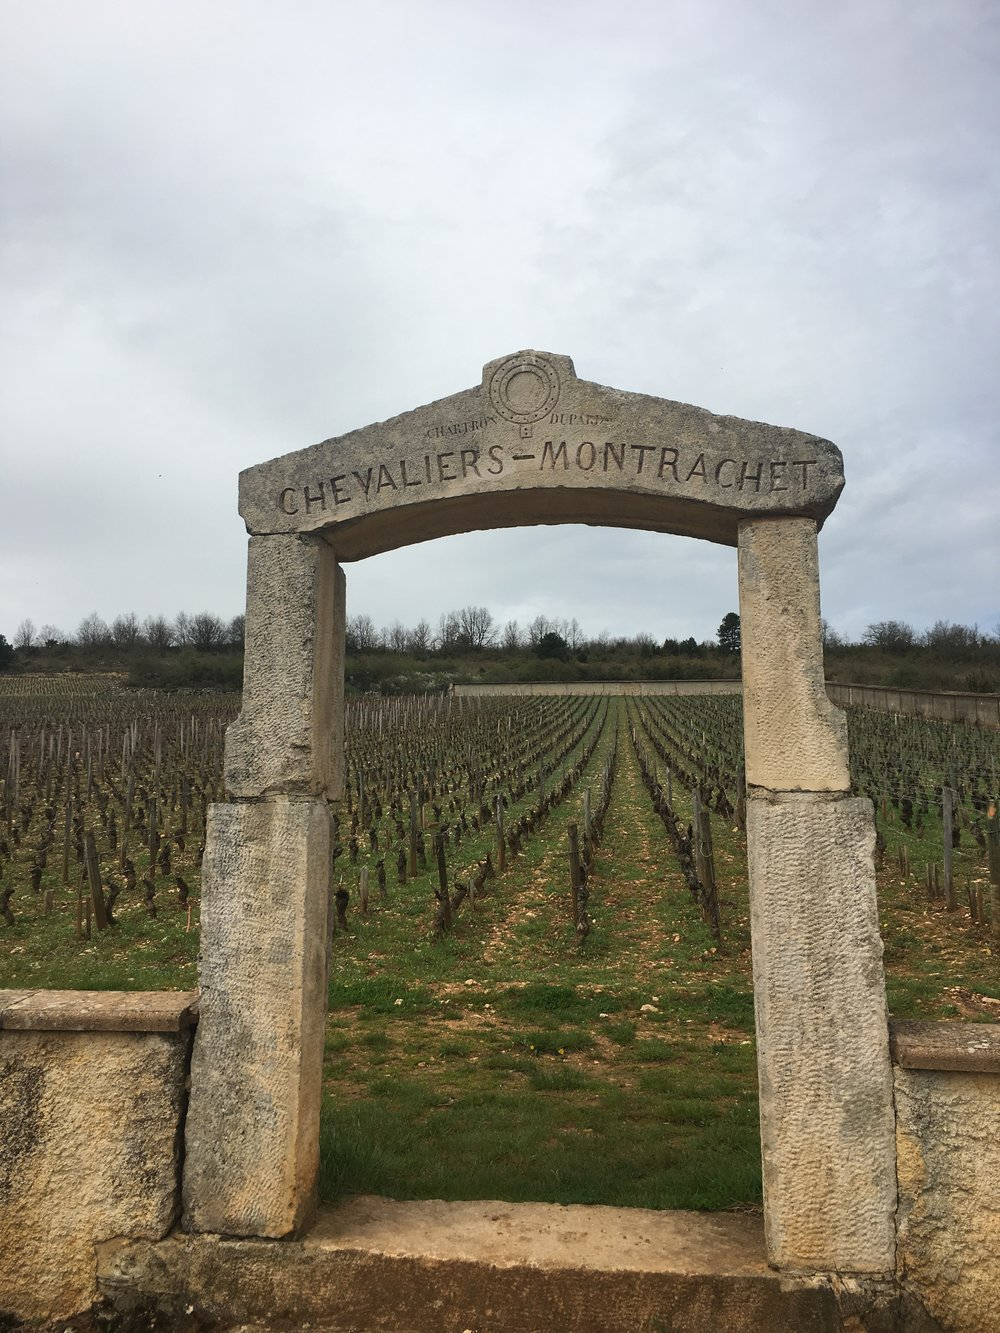 The legendary Chevalier-Montrachet vineyard